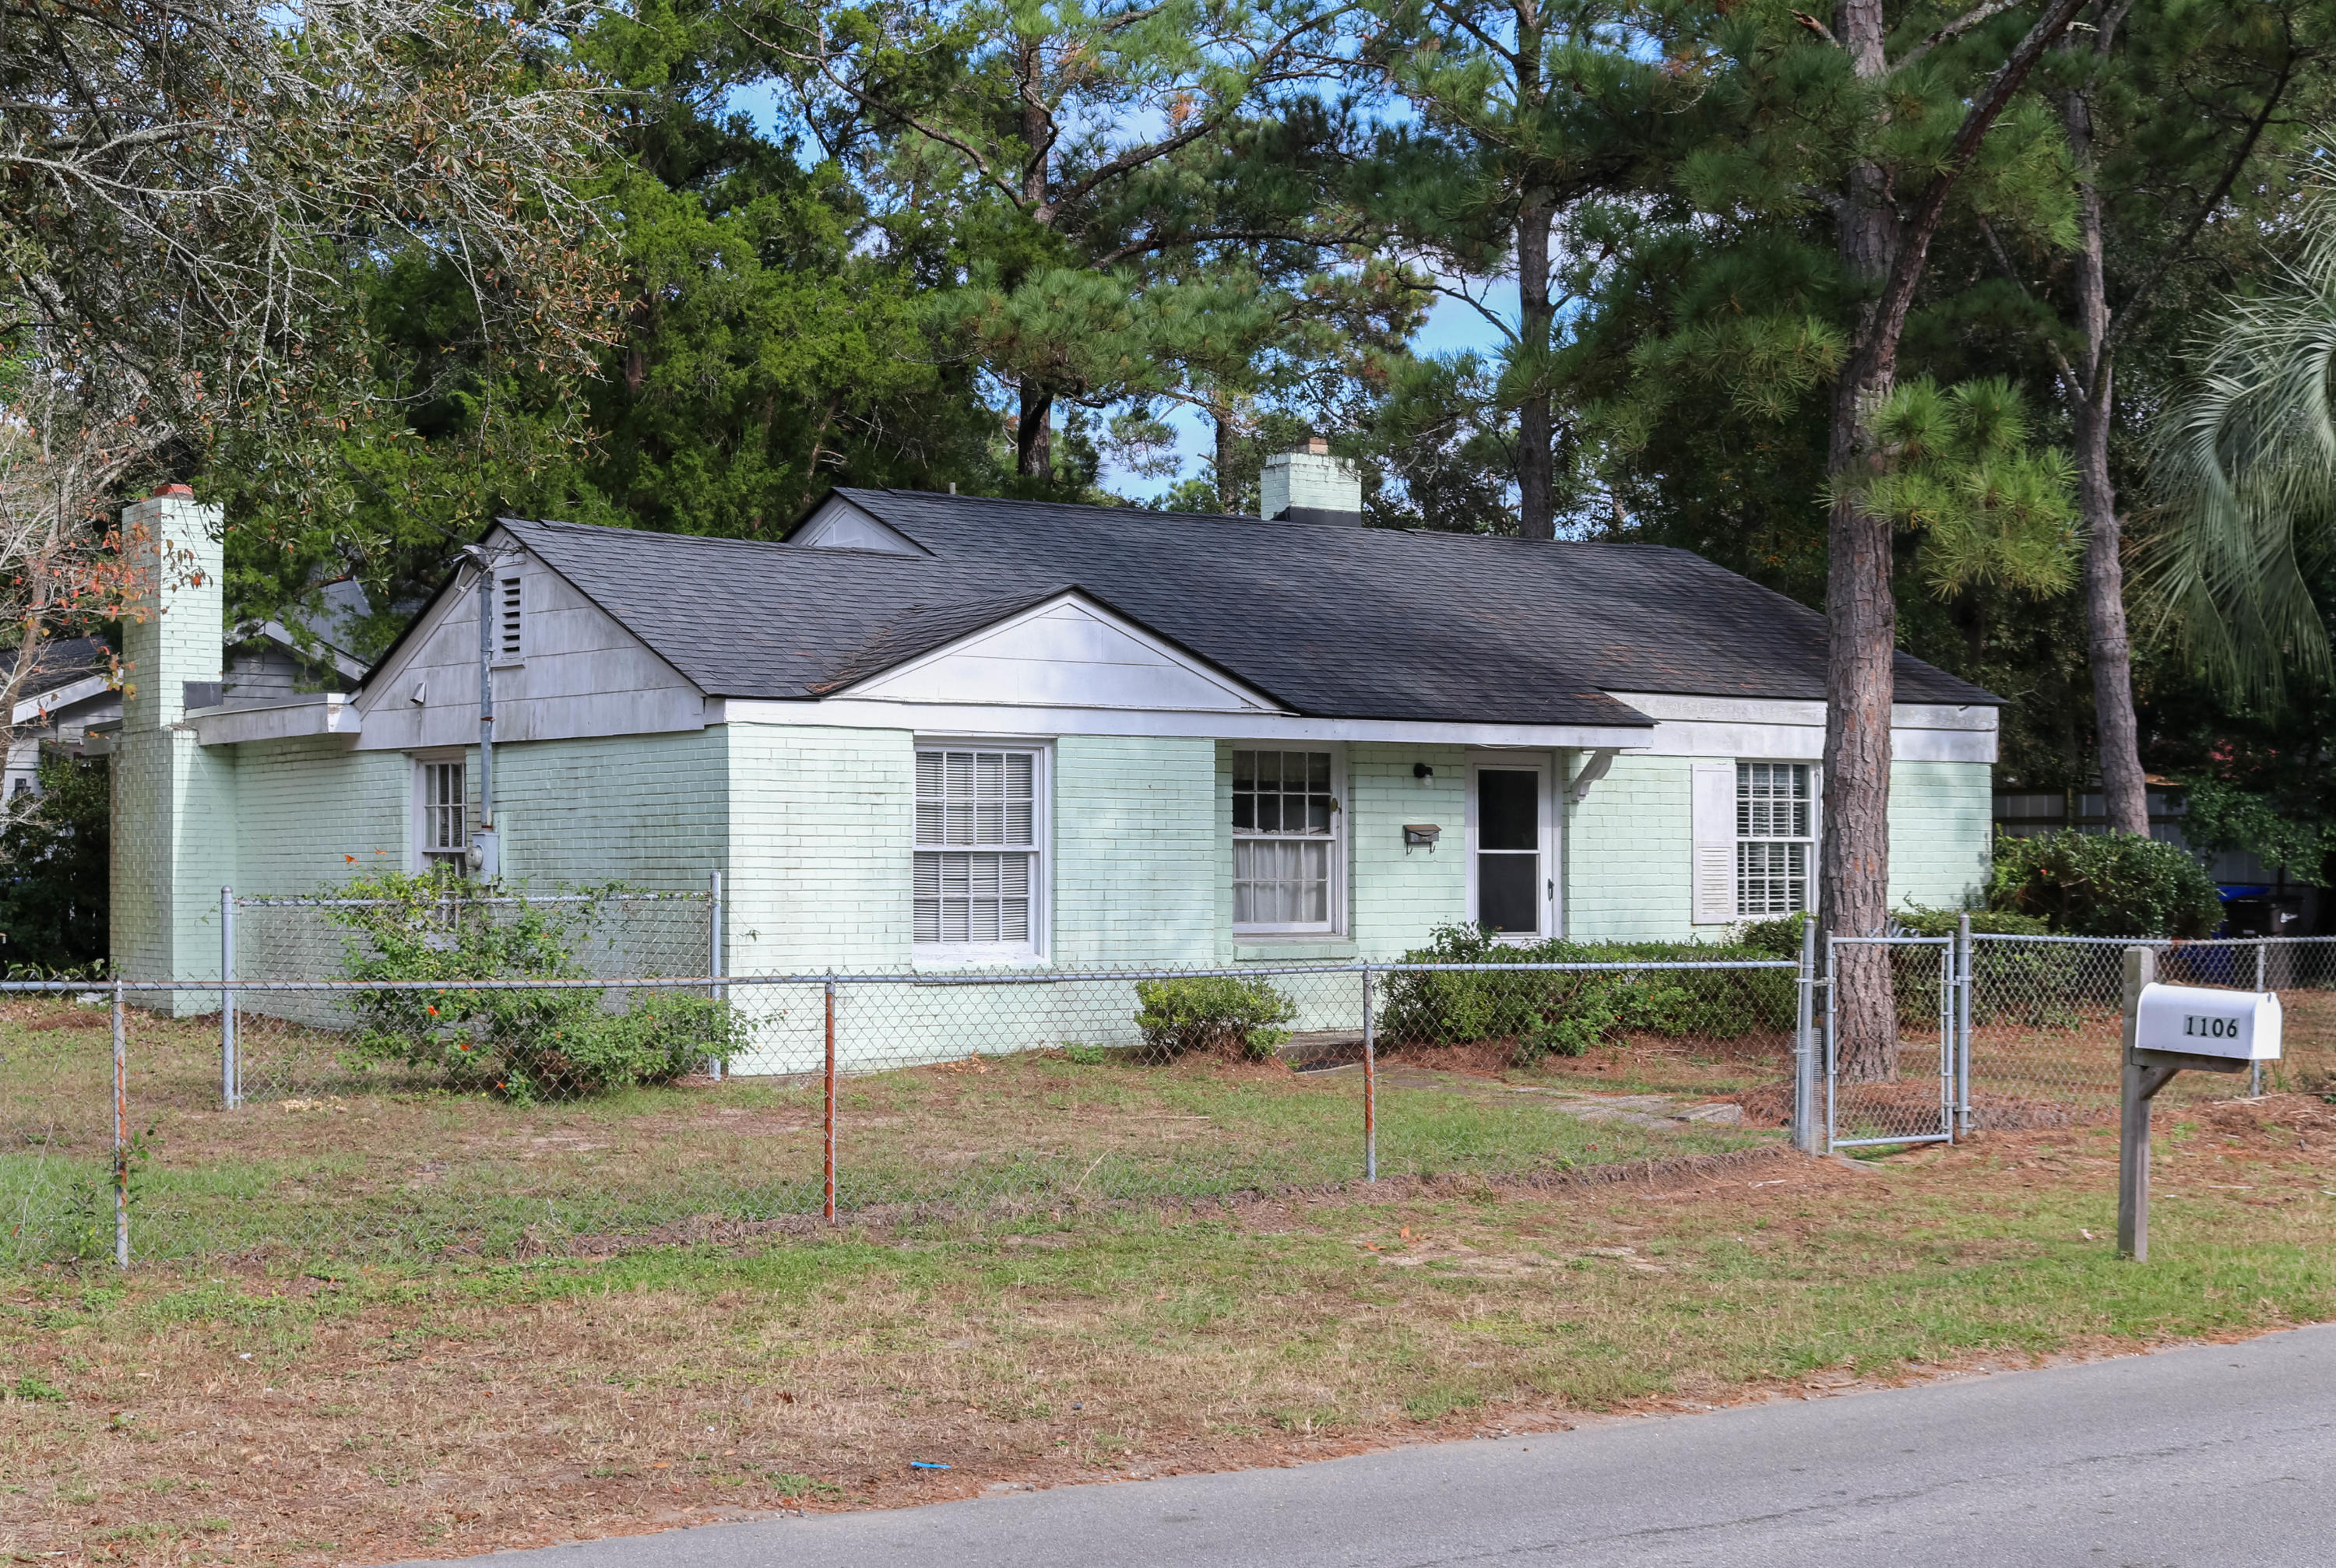 Old Mt Pleasant Homes For Sale - 1106 Simmons, Mount Pleasant, SC - 2